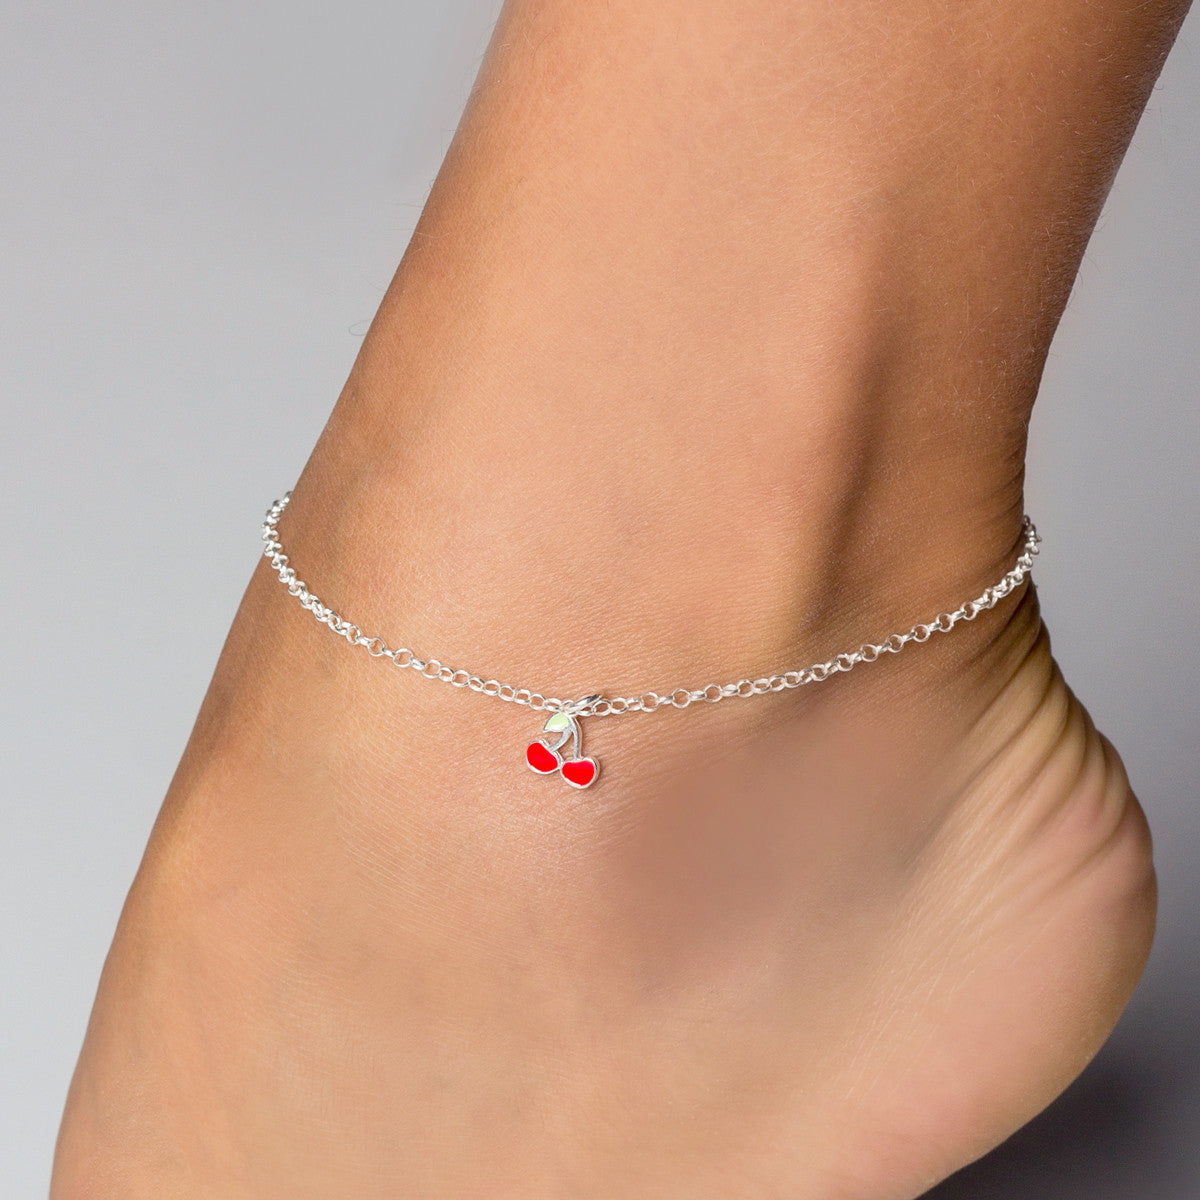 anklet zoom heart mv kaystore length en hover to white kay diamond inch gold zm